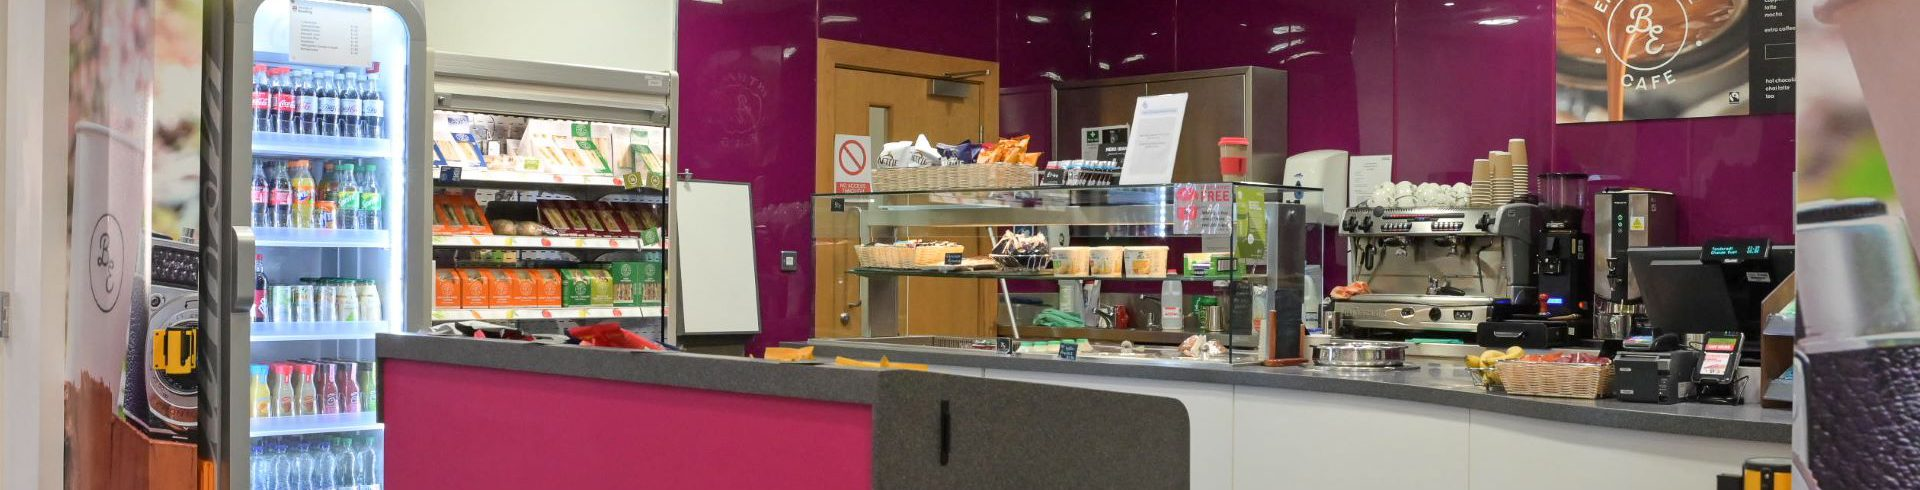 A photo of Enterprise Cafe